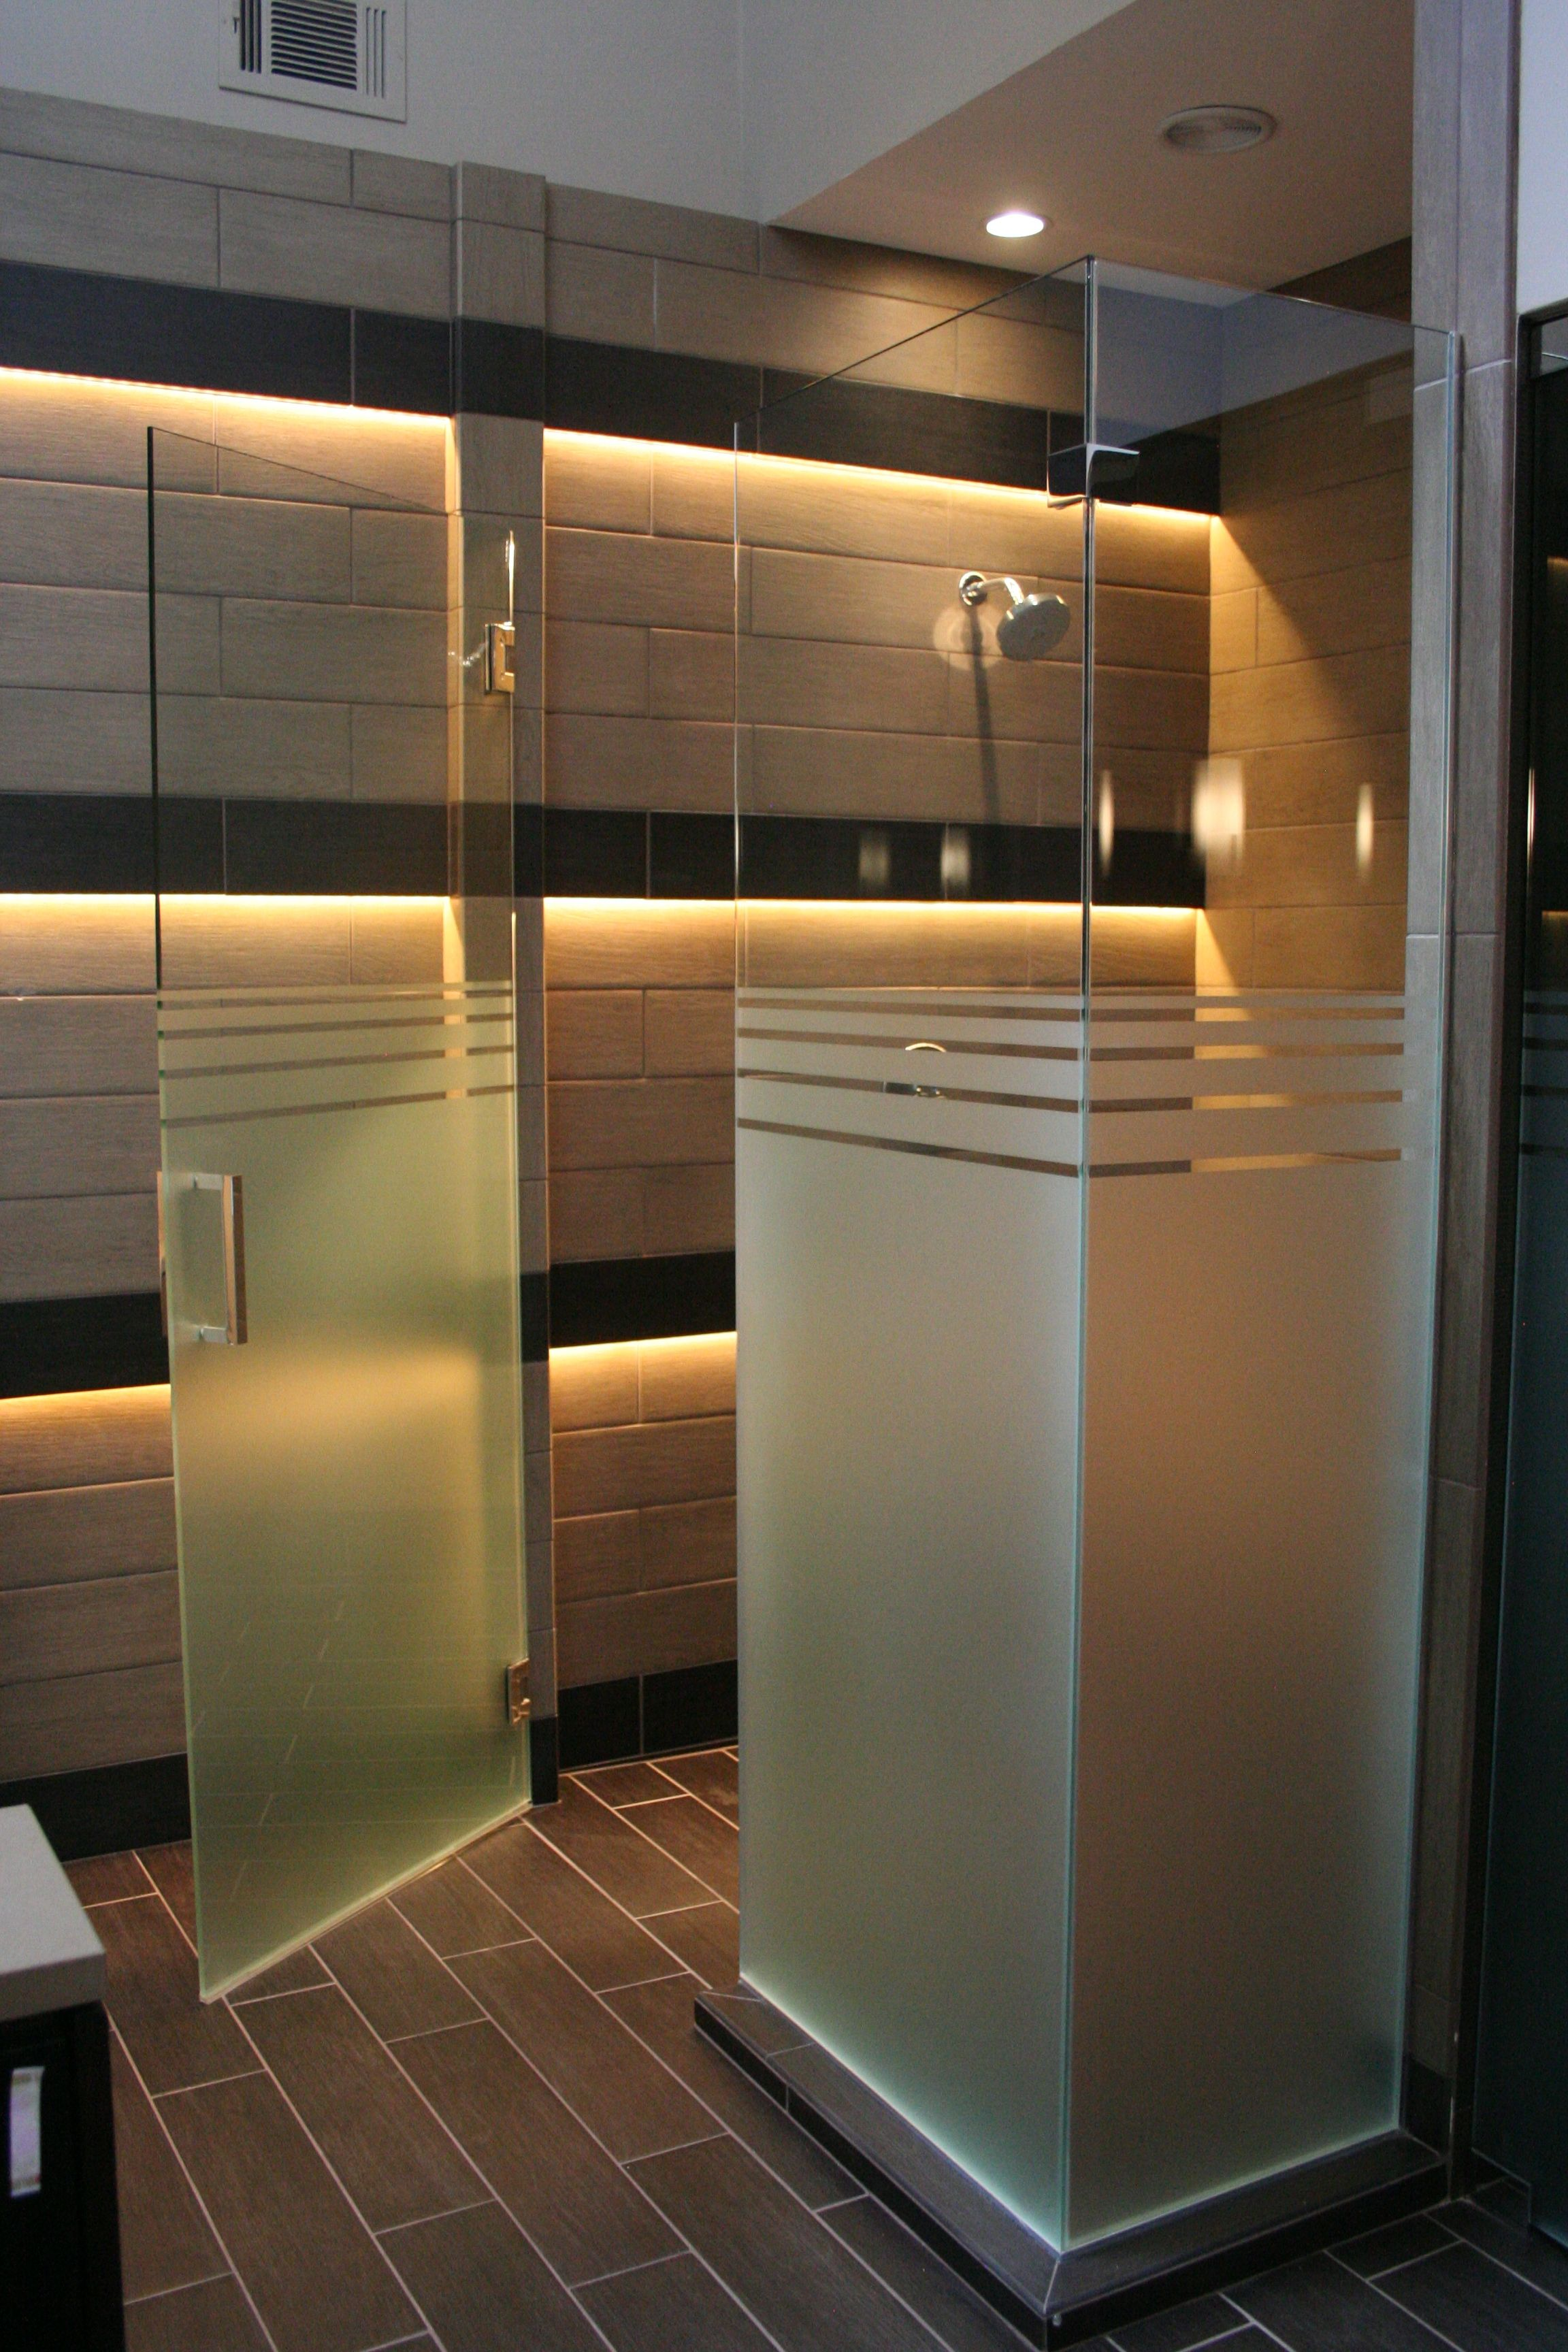 Door Designs: Frameless Showers | Shower doors, Bathroom shower doors,  Frosted shower doors